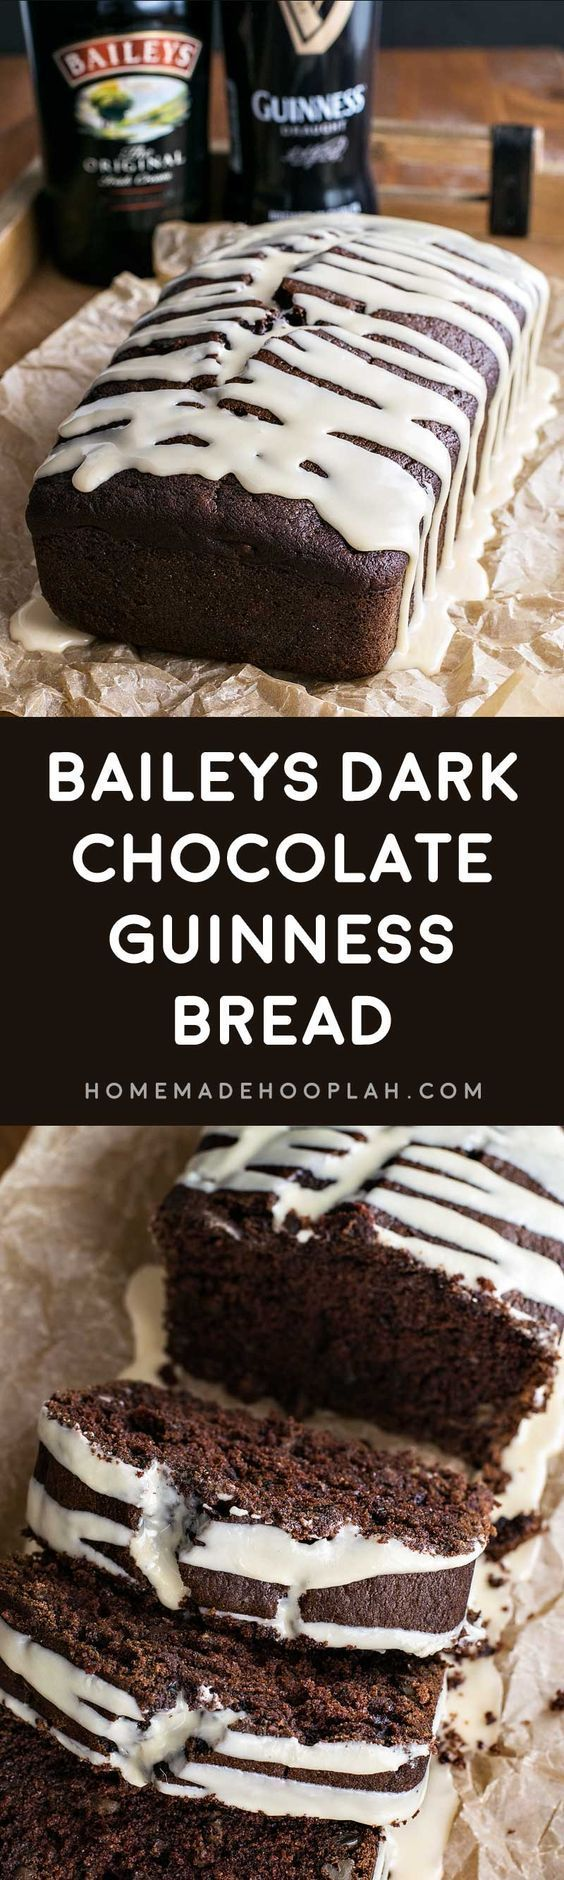 Baileys Dark Chocolate Guinness Bread! Rich and dark chocolate Guinness bread laced with chocolate chips and walnuts then frosted with a sweet Baileys glaze. I would love to try this with a local brew!